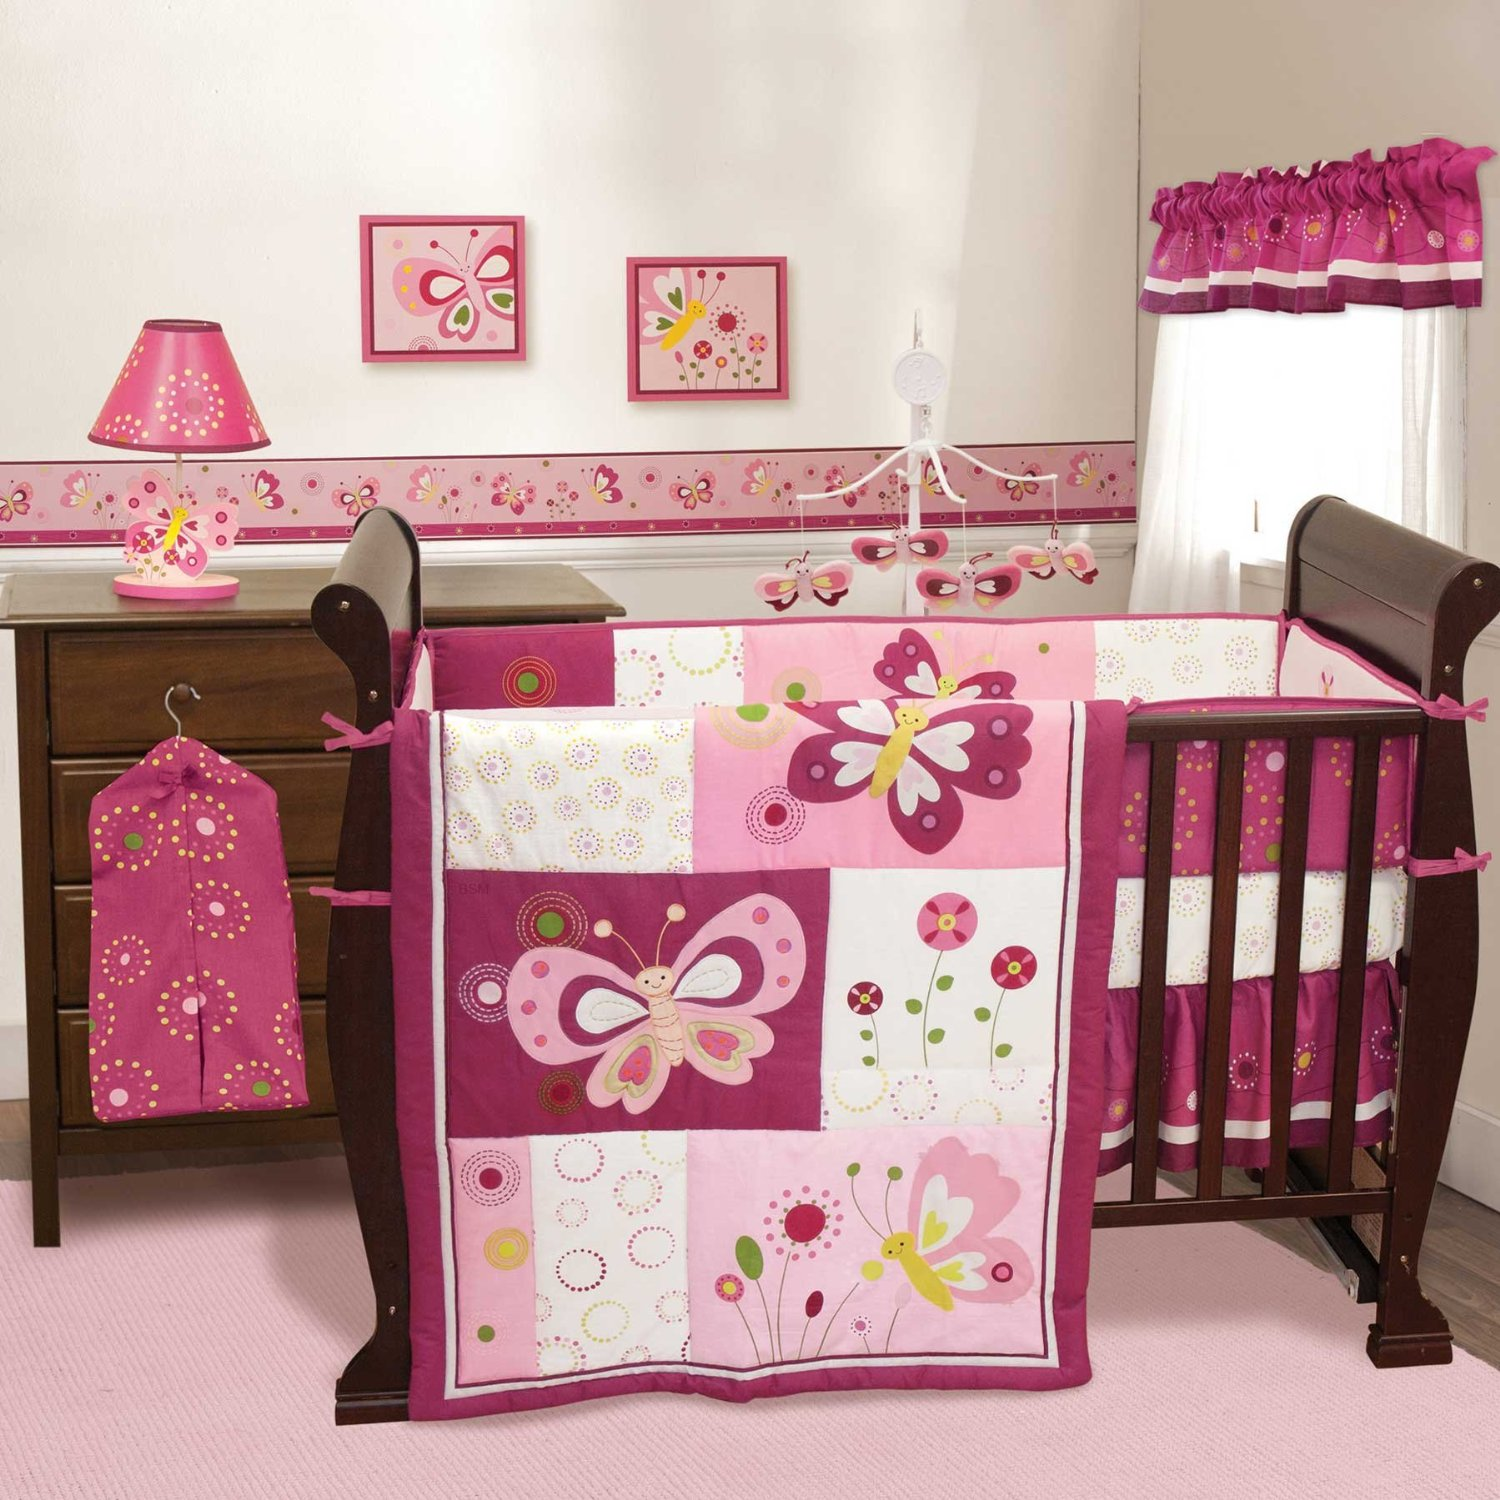 Lovely Girl Crib Bedding With Girlish Ornaments And